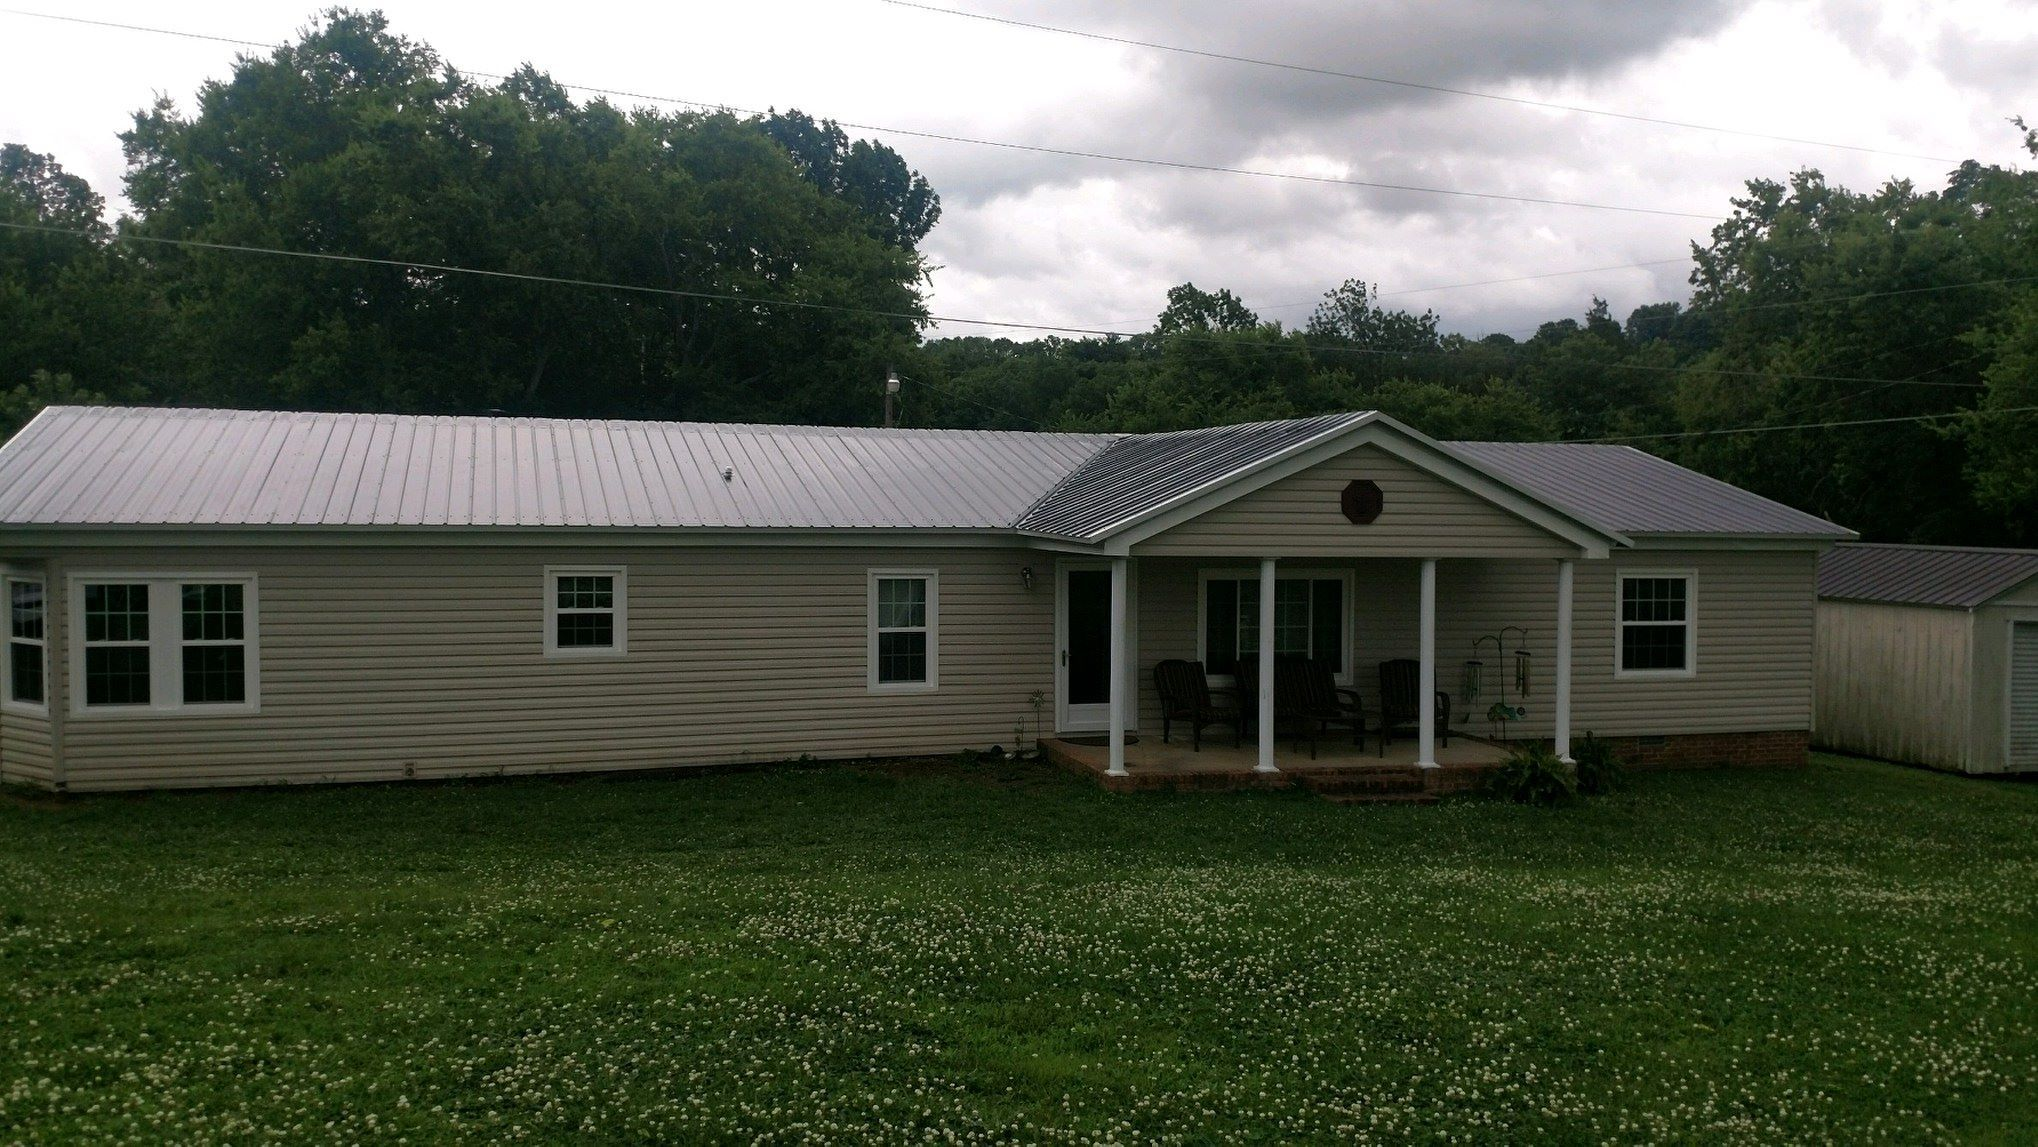 Energy Saving Mobile Home Roofing System Perma Roof Metal Roofing Systems Roofing Home